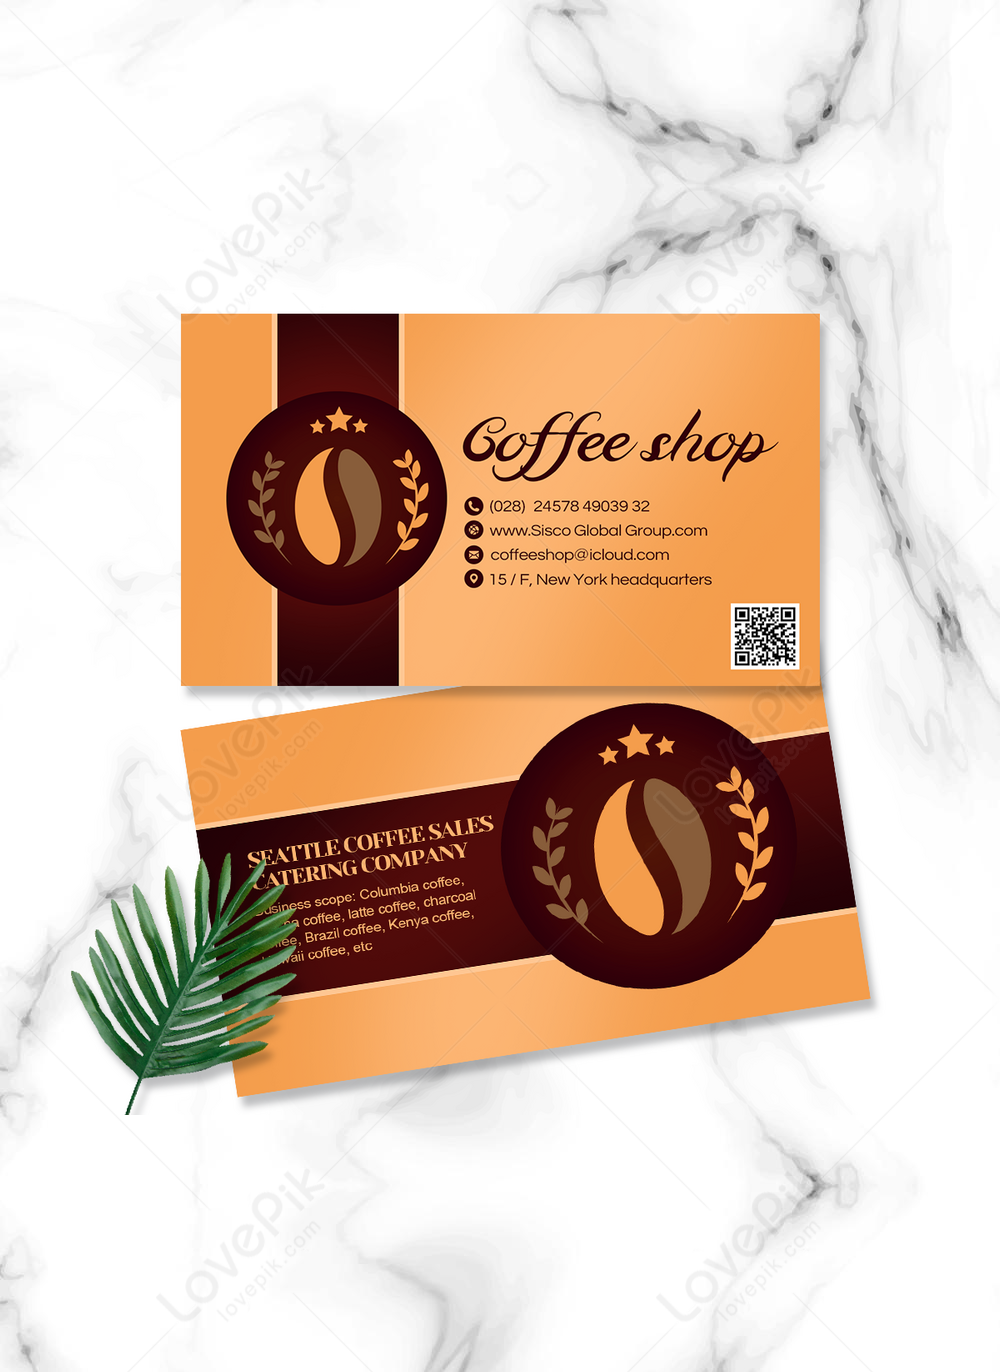 Coffee house business card design template image_picture free Regarding Coffee Business Card Template Free